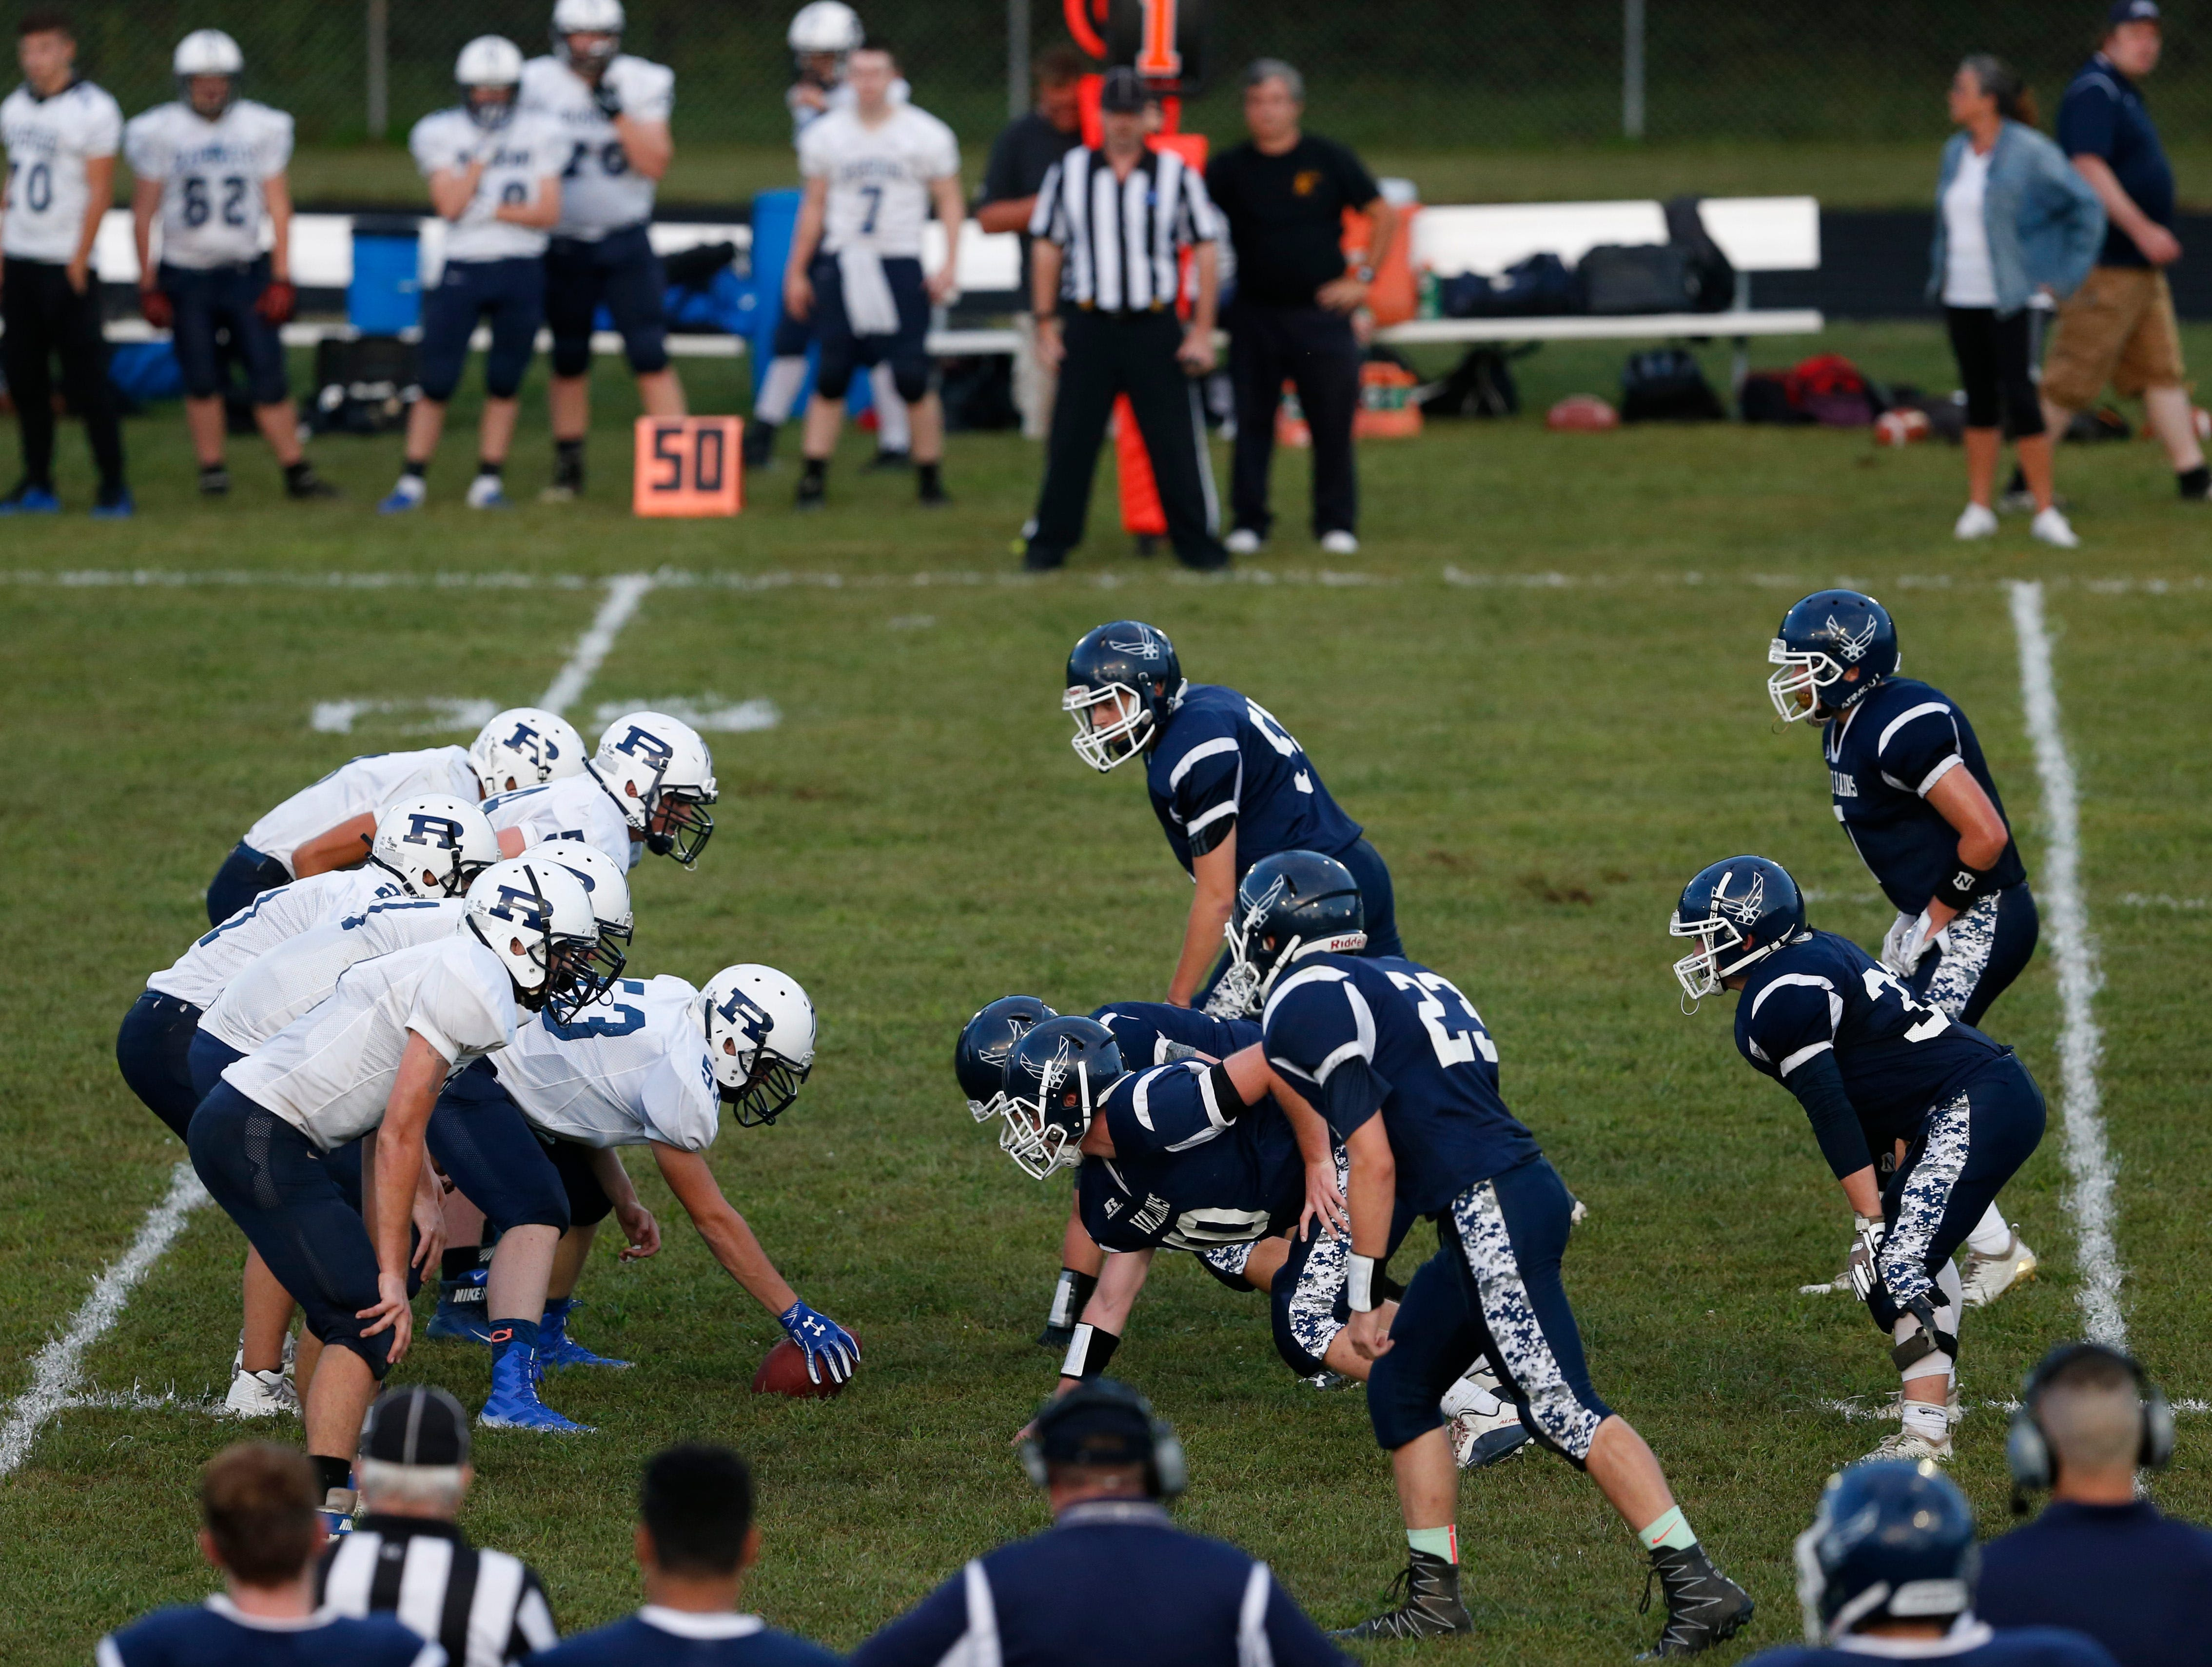 Pine Plains and Roscoe line up before the snap during Friday's game at Stissing Mountain High School on September 7, 2018.